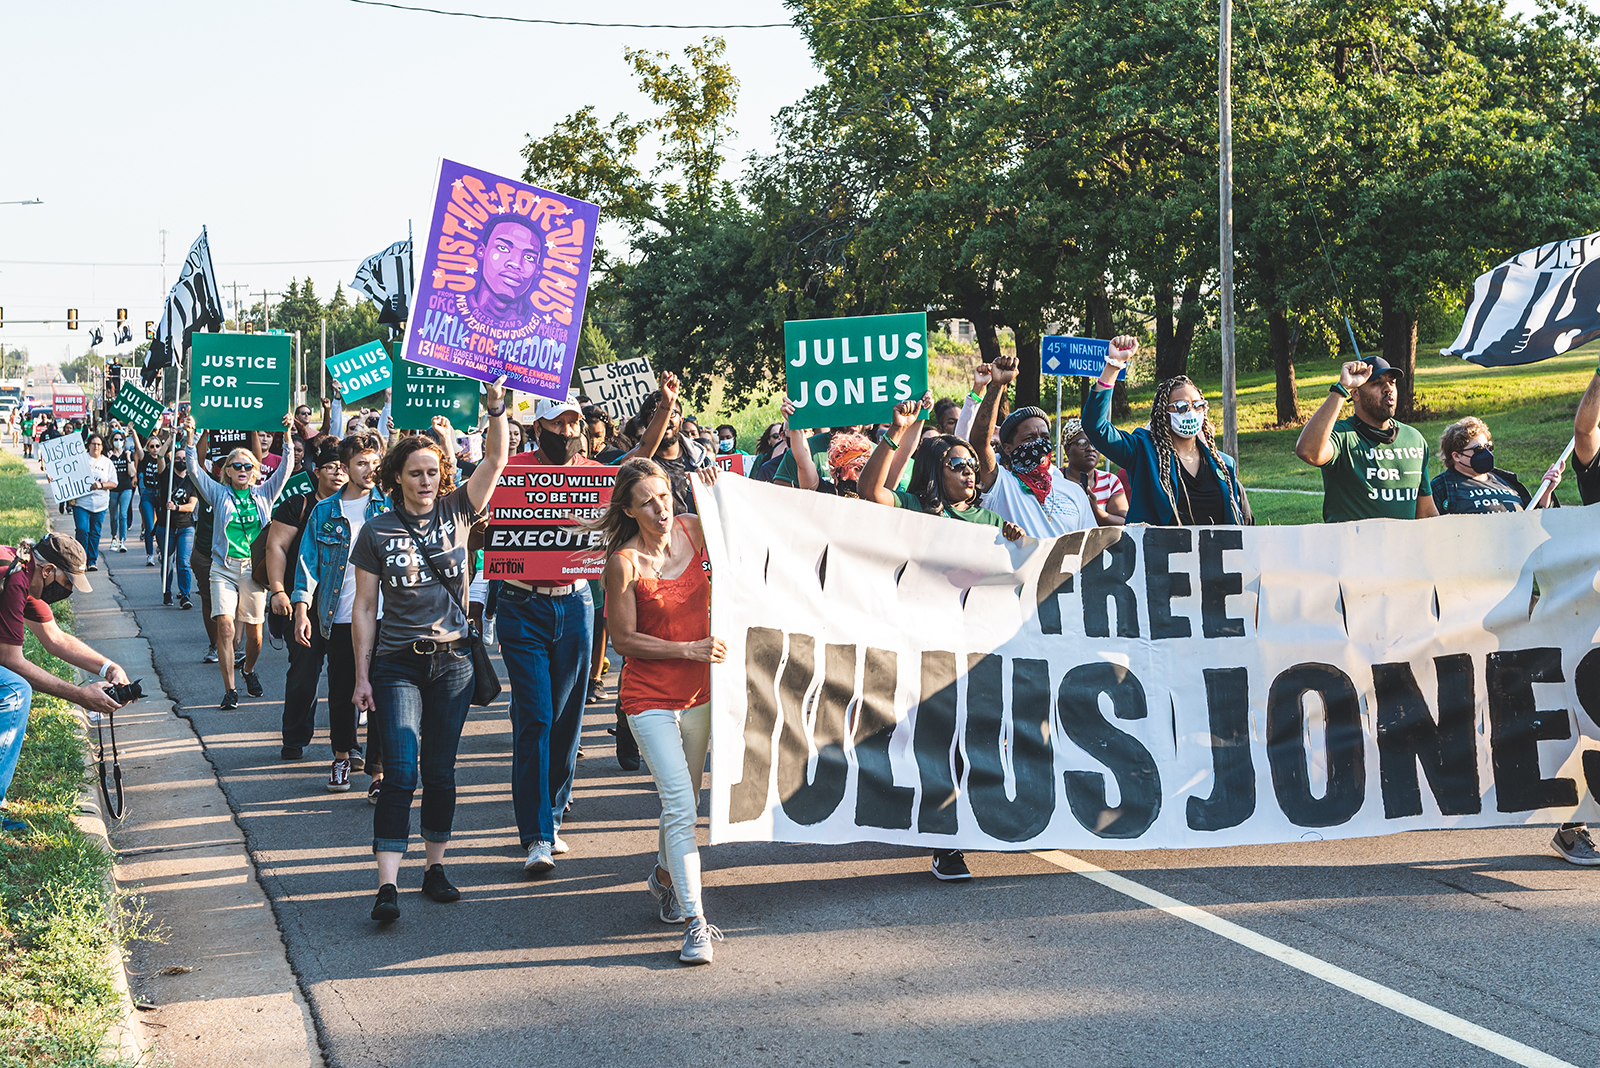 Demonstrators participate in a Justice for Julius Jones Commutation Hearing Rally in Oklahoma City, Oklahoma, Monday, Sept. 13, 2021. Photo courtesy of Ben Ehrlich Creative